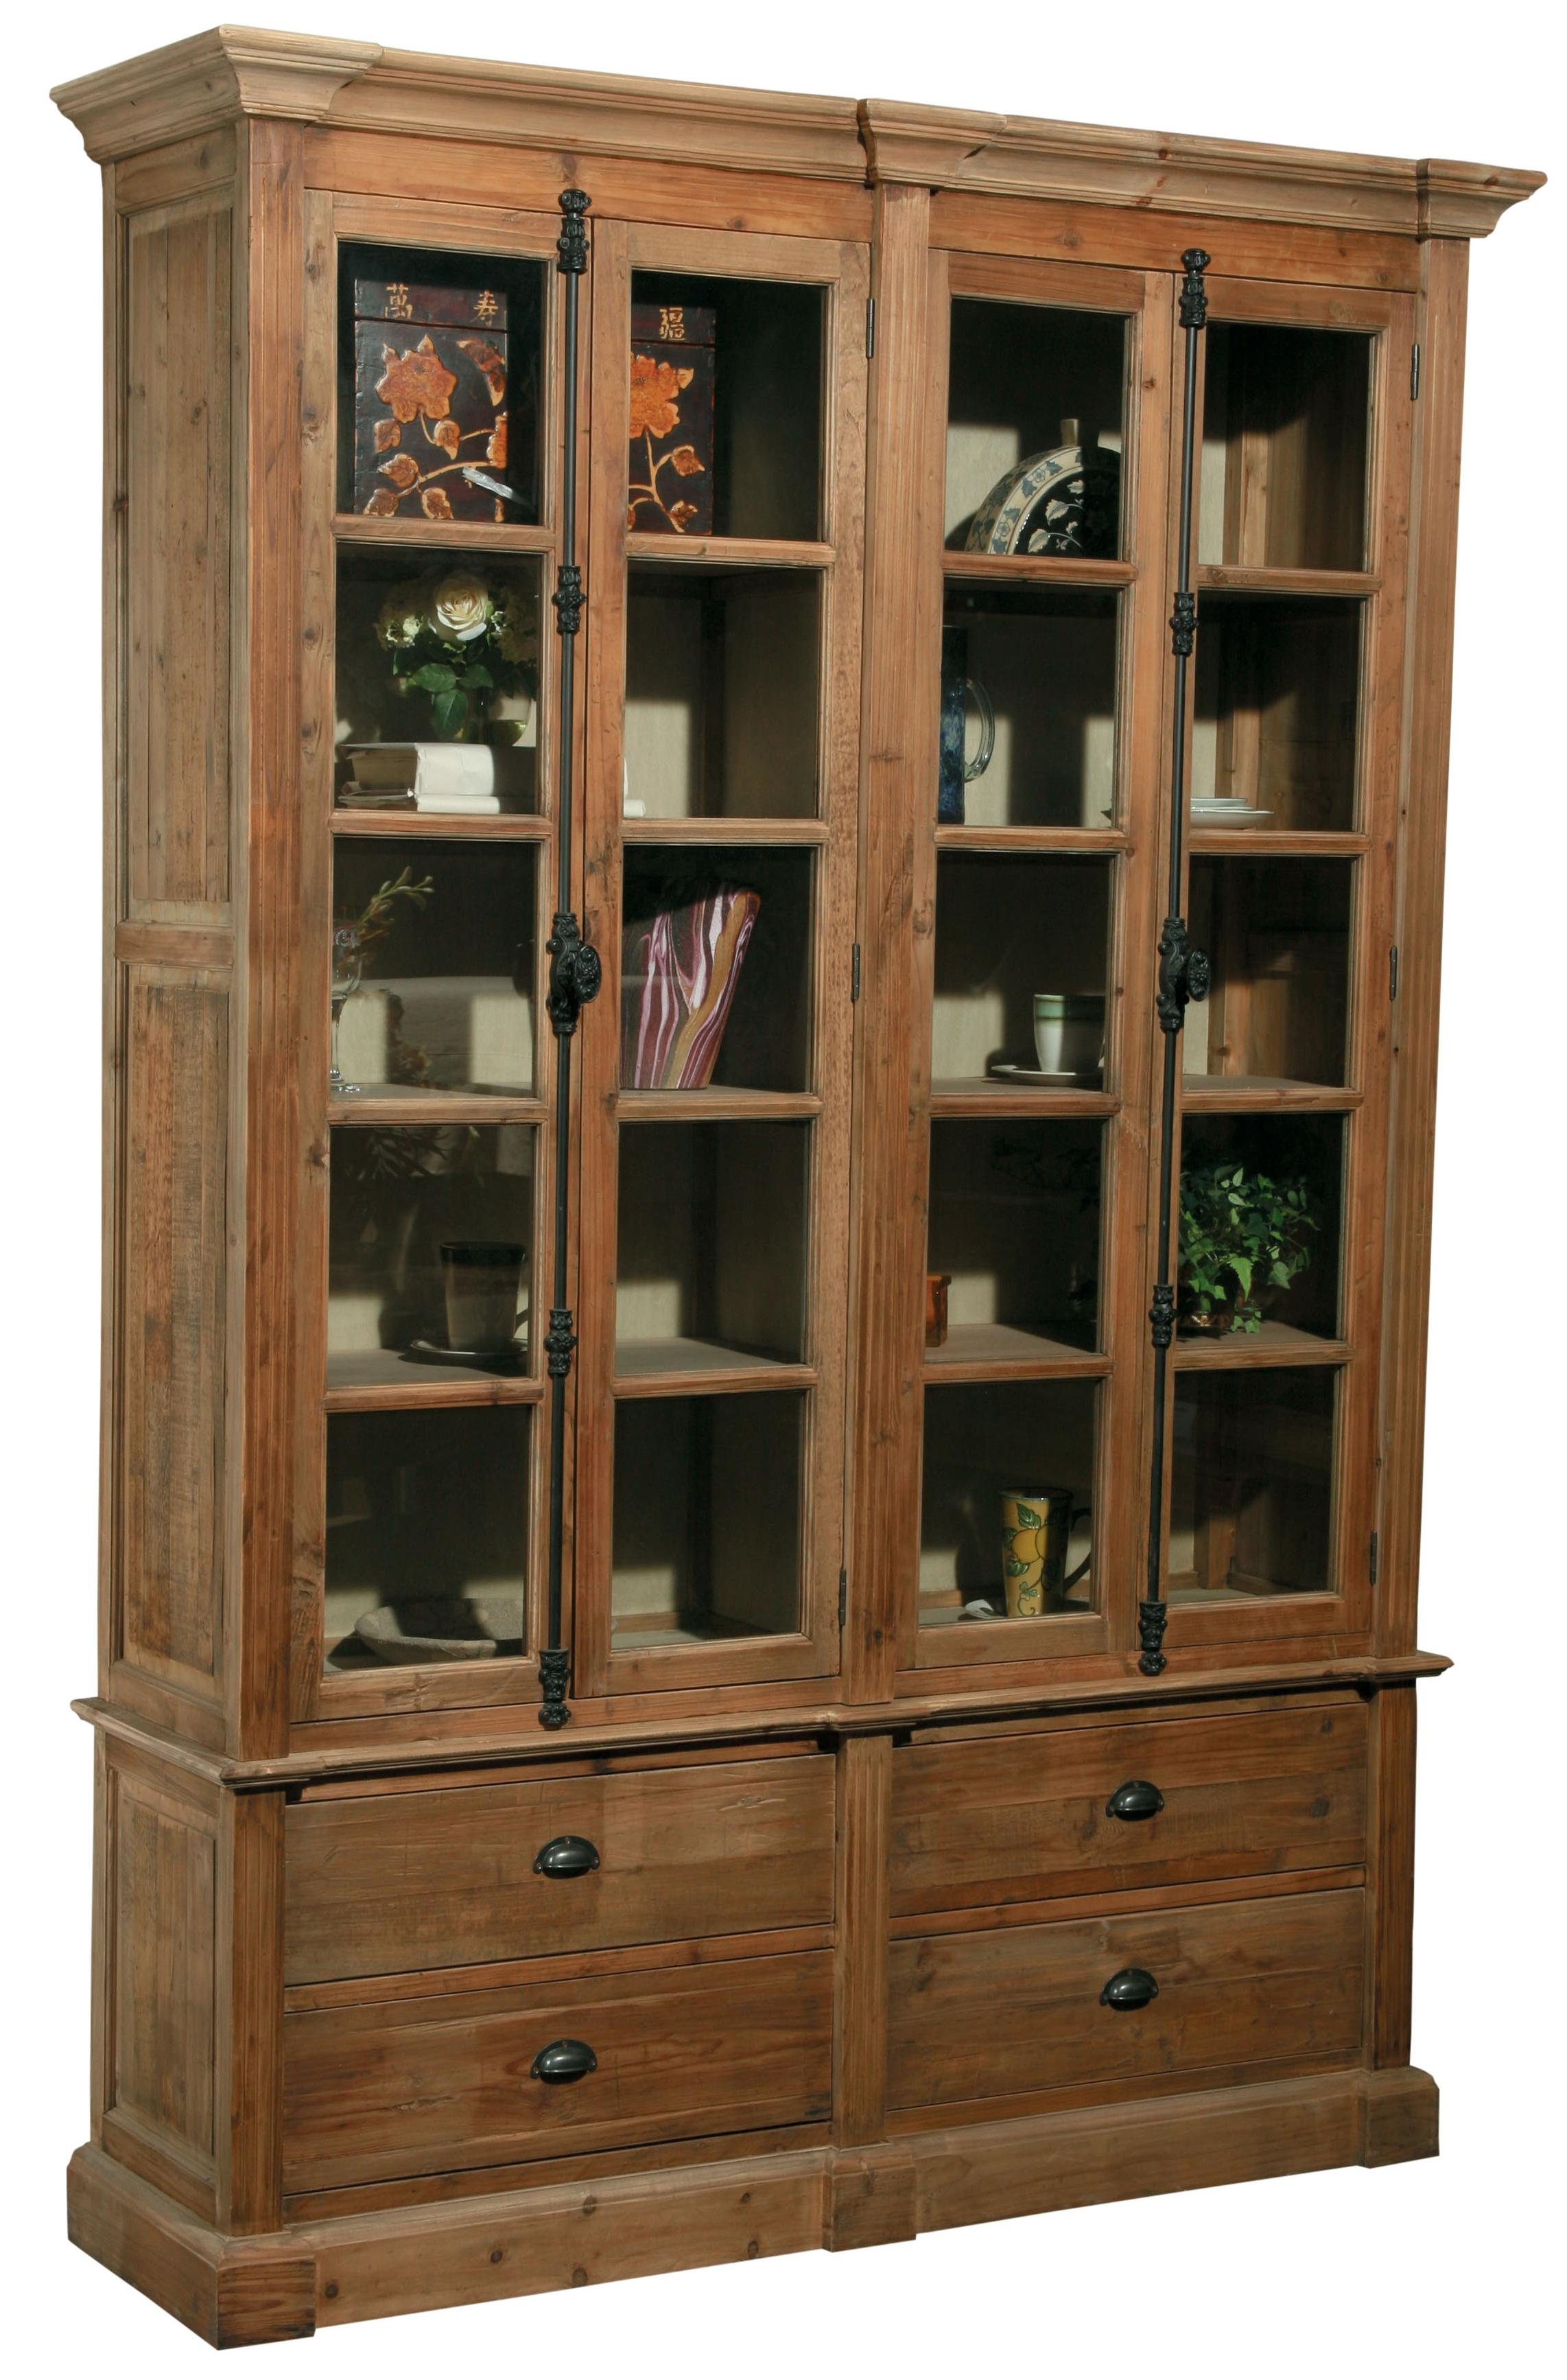 Furniture Classics Accents Bookcase - Item Number: 84271